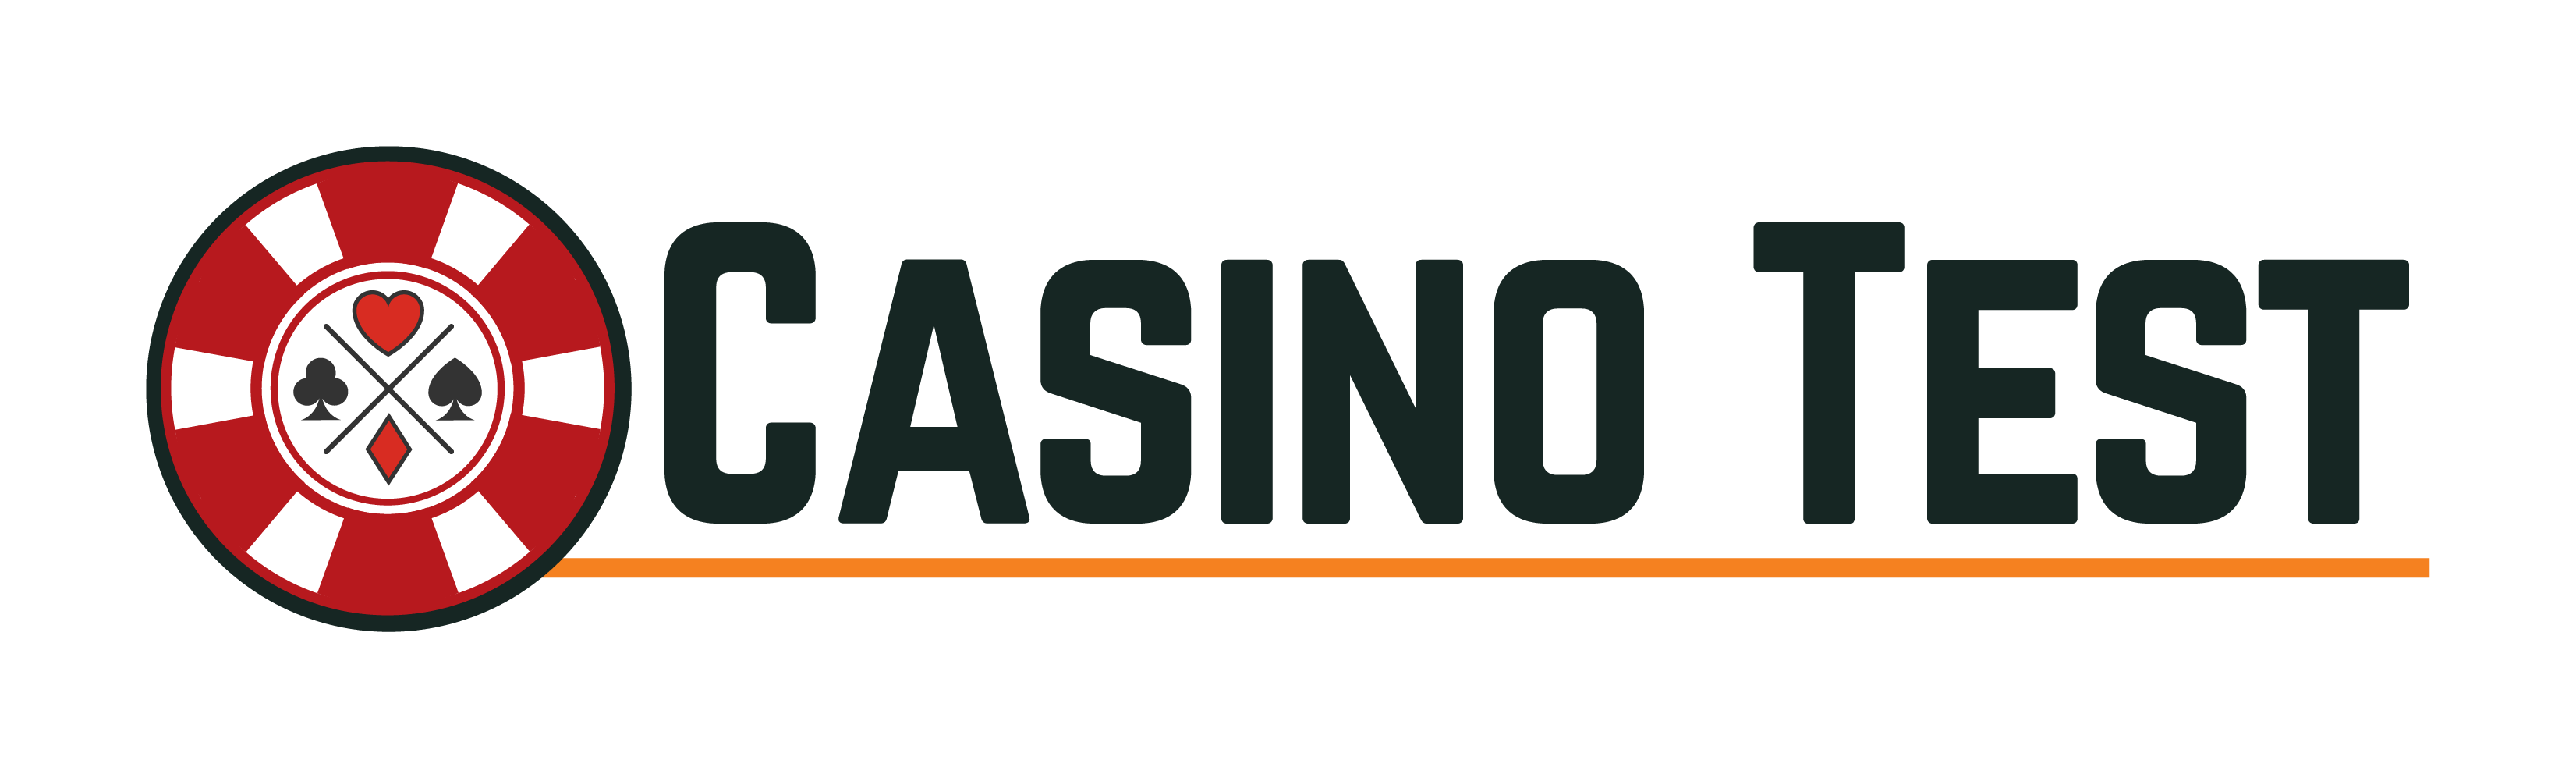 Casinotest